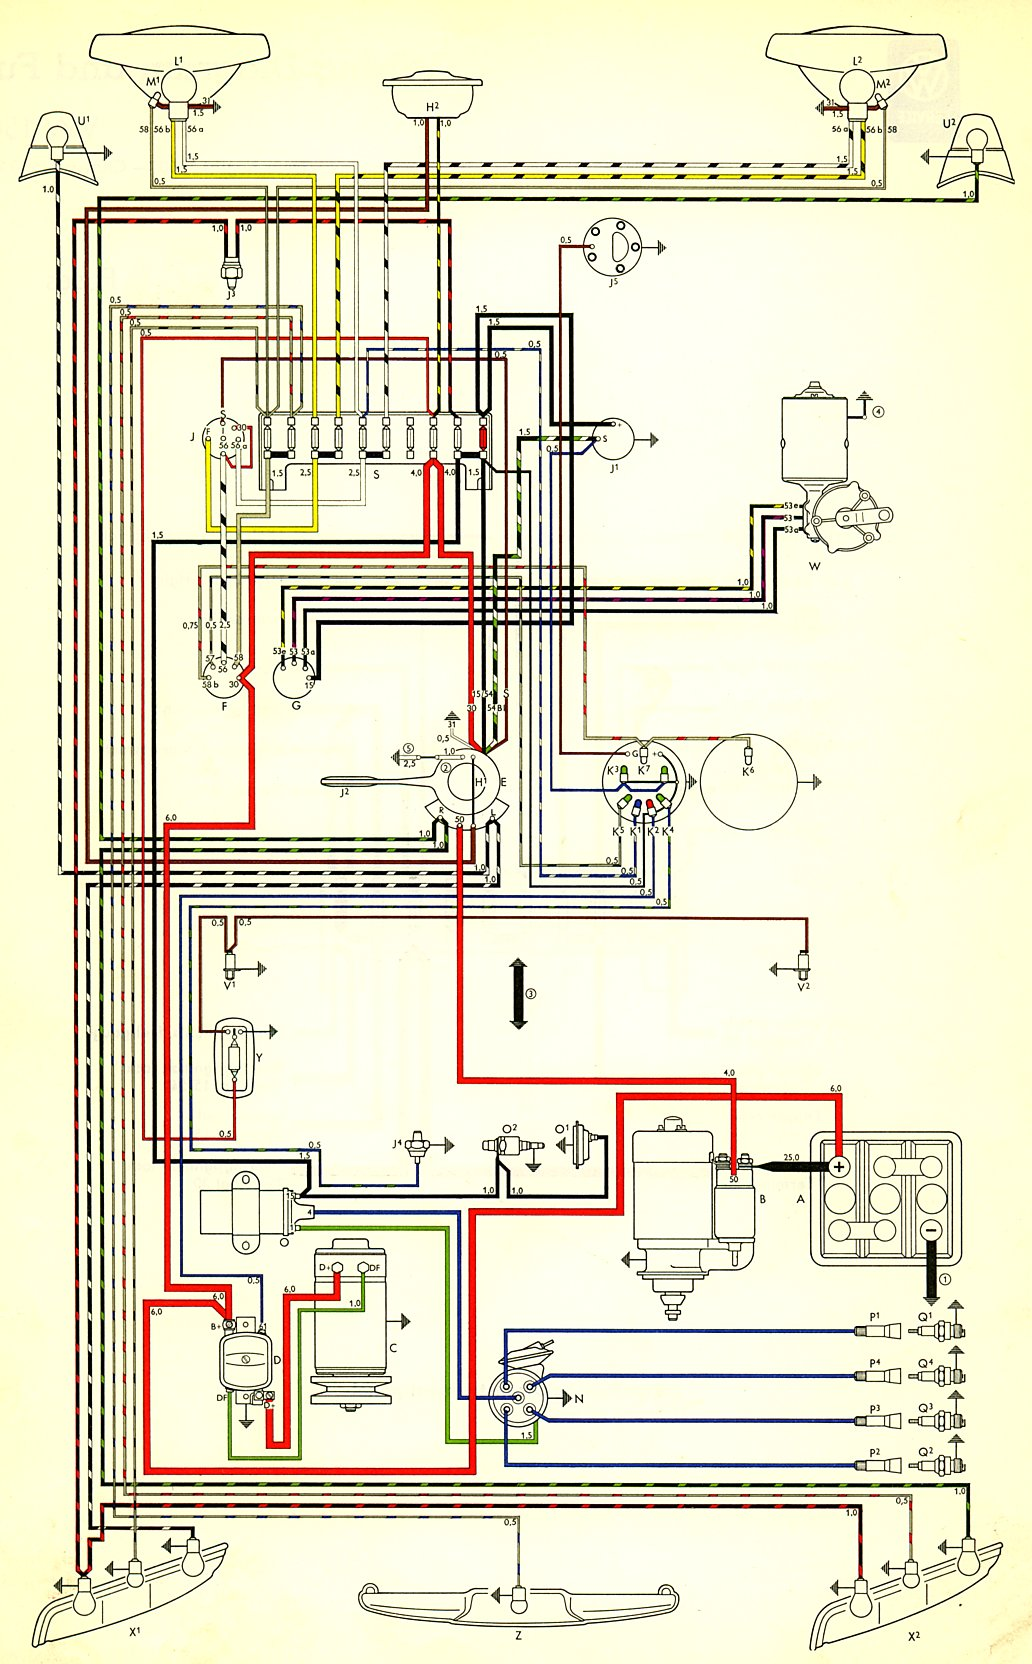 Type 3 Wiring Diagrams Vw Beetle Diagram Light